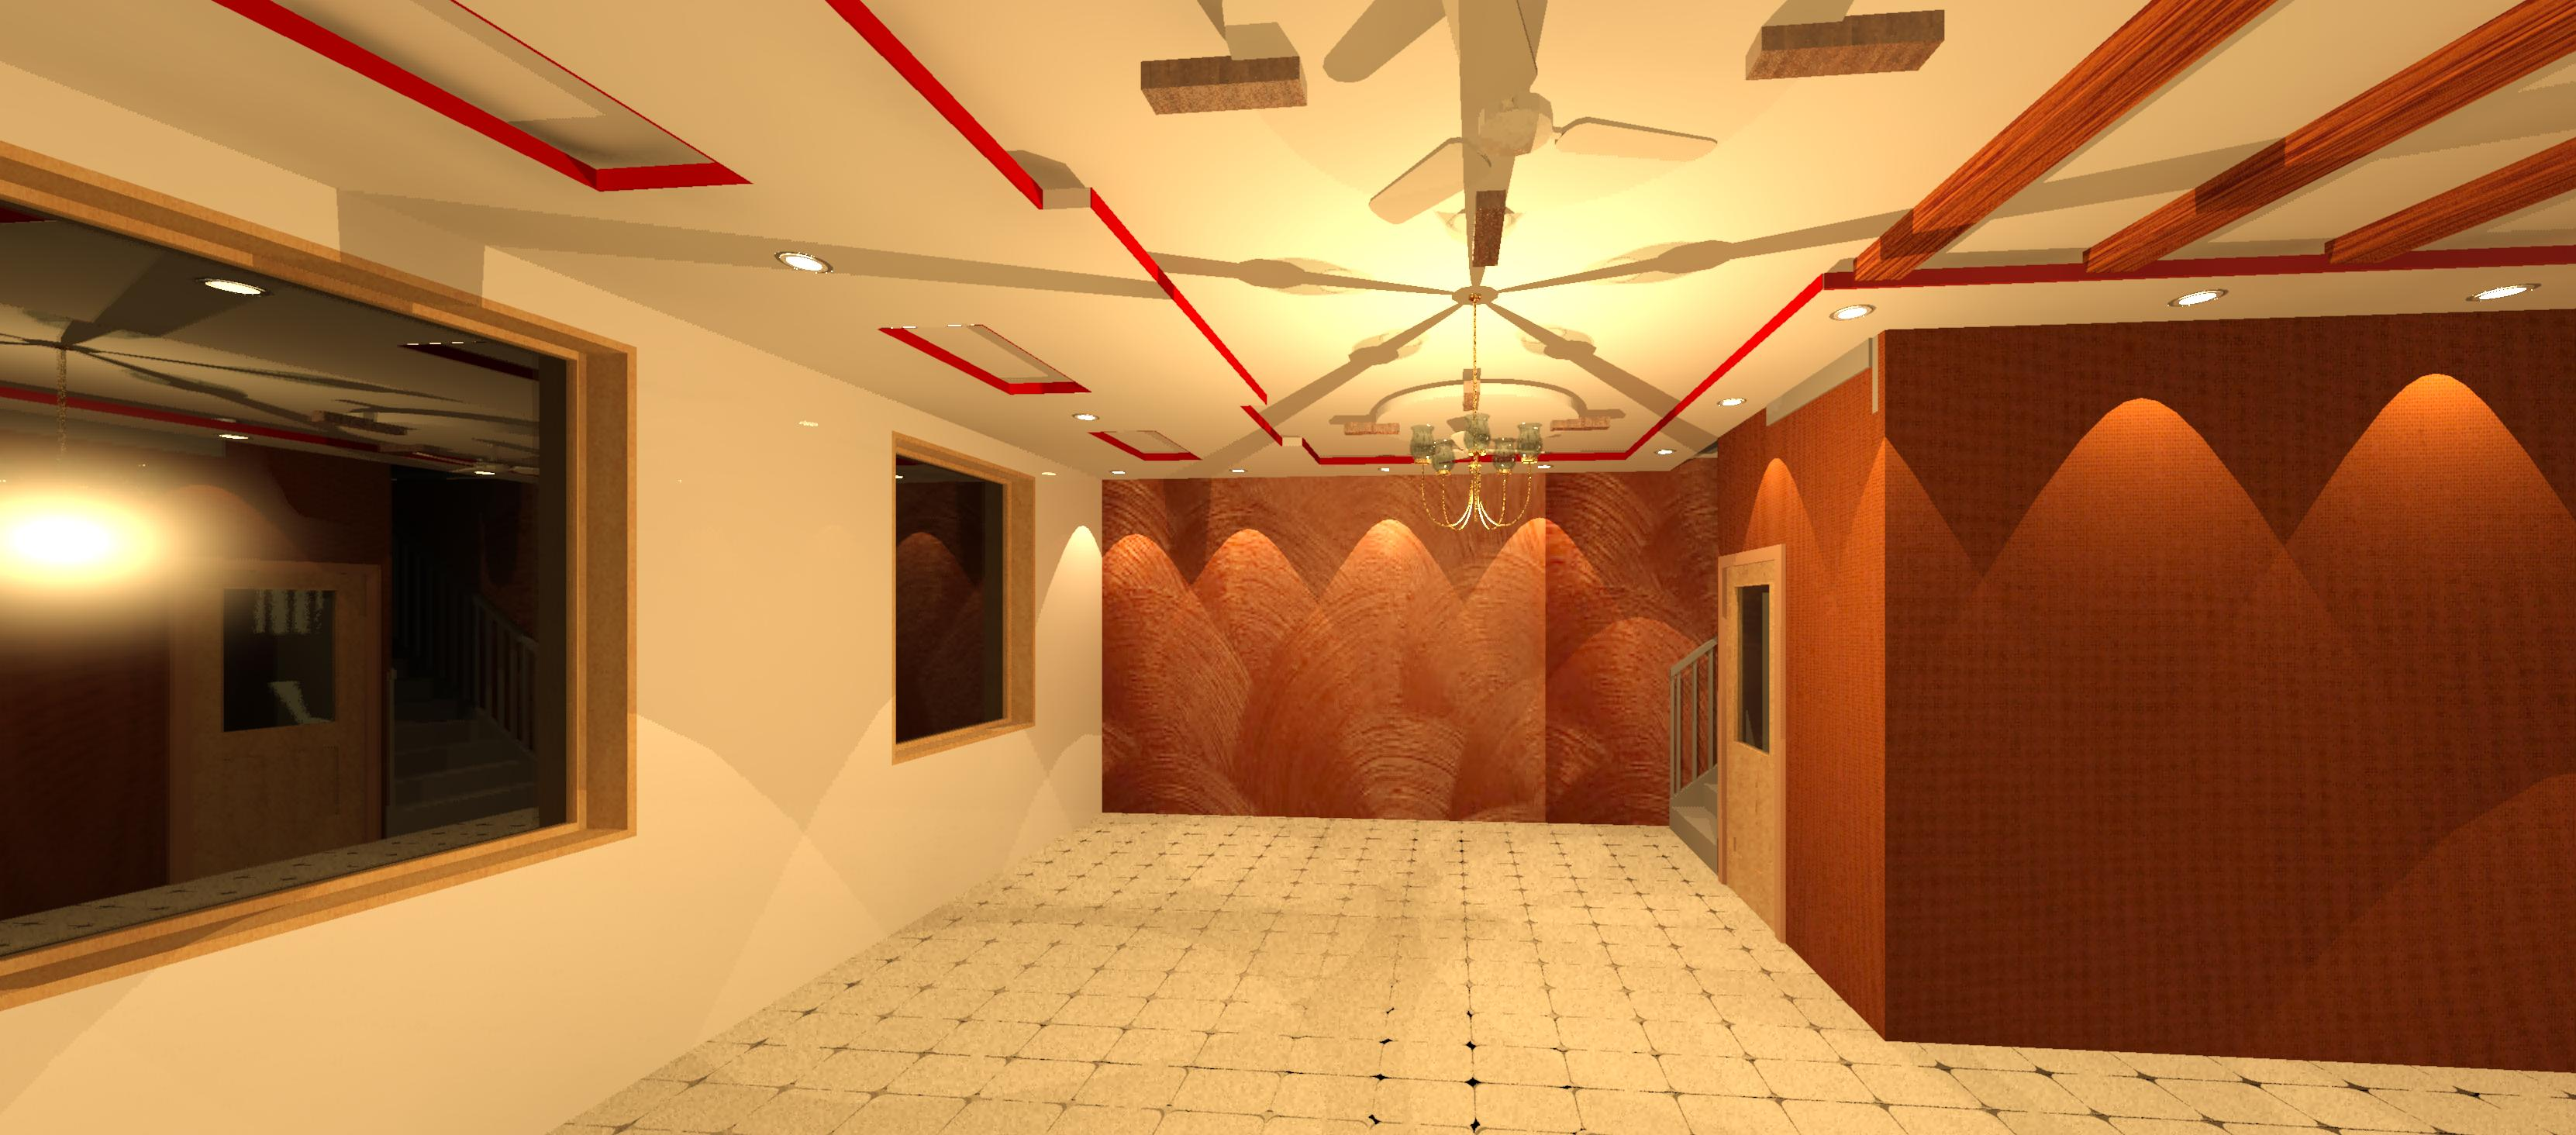 9884930307 By: Roshan Interiors, False Ceiling Contractor In Hyderabad, Interior  Contractor In Hyderabad, Carpenter Works In Hyderabad, Painting Contractors  ...